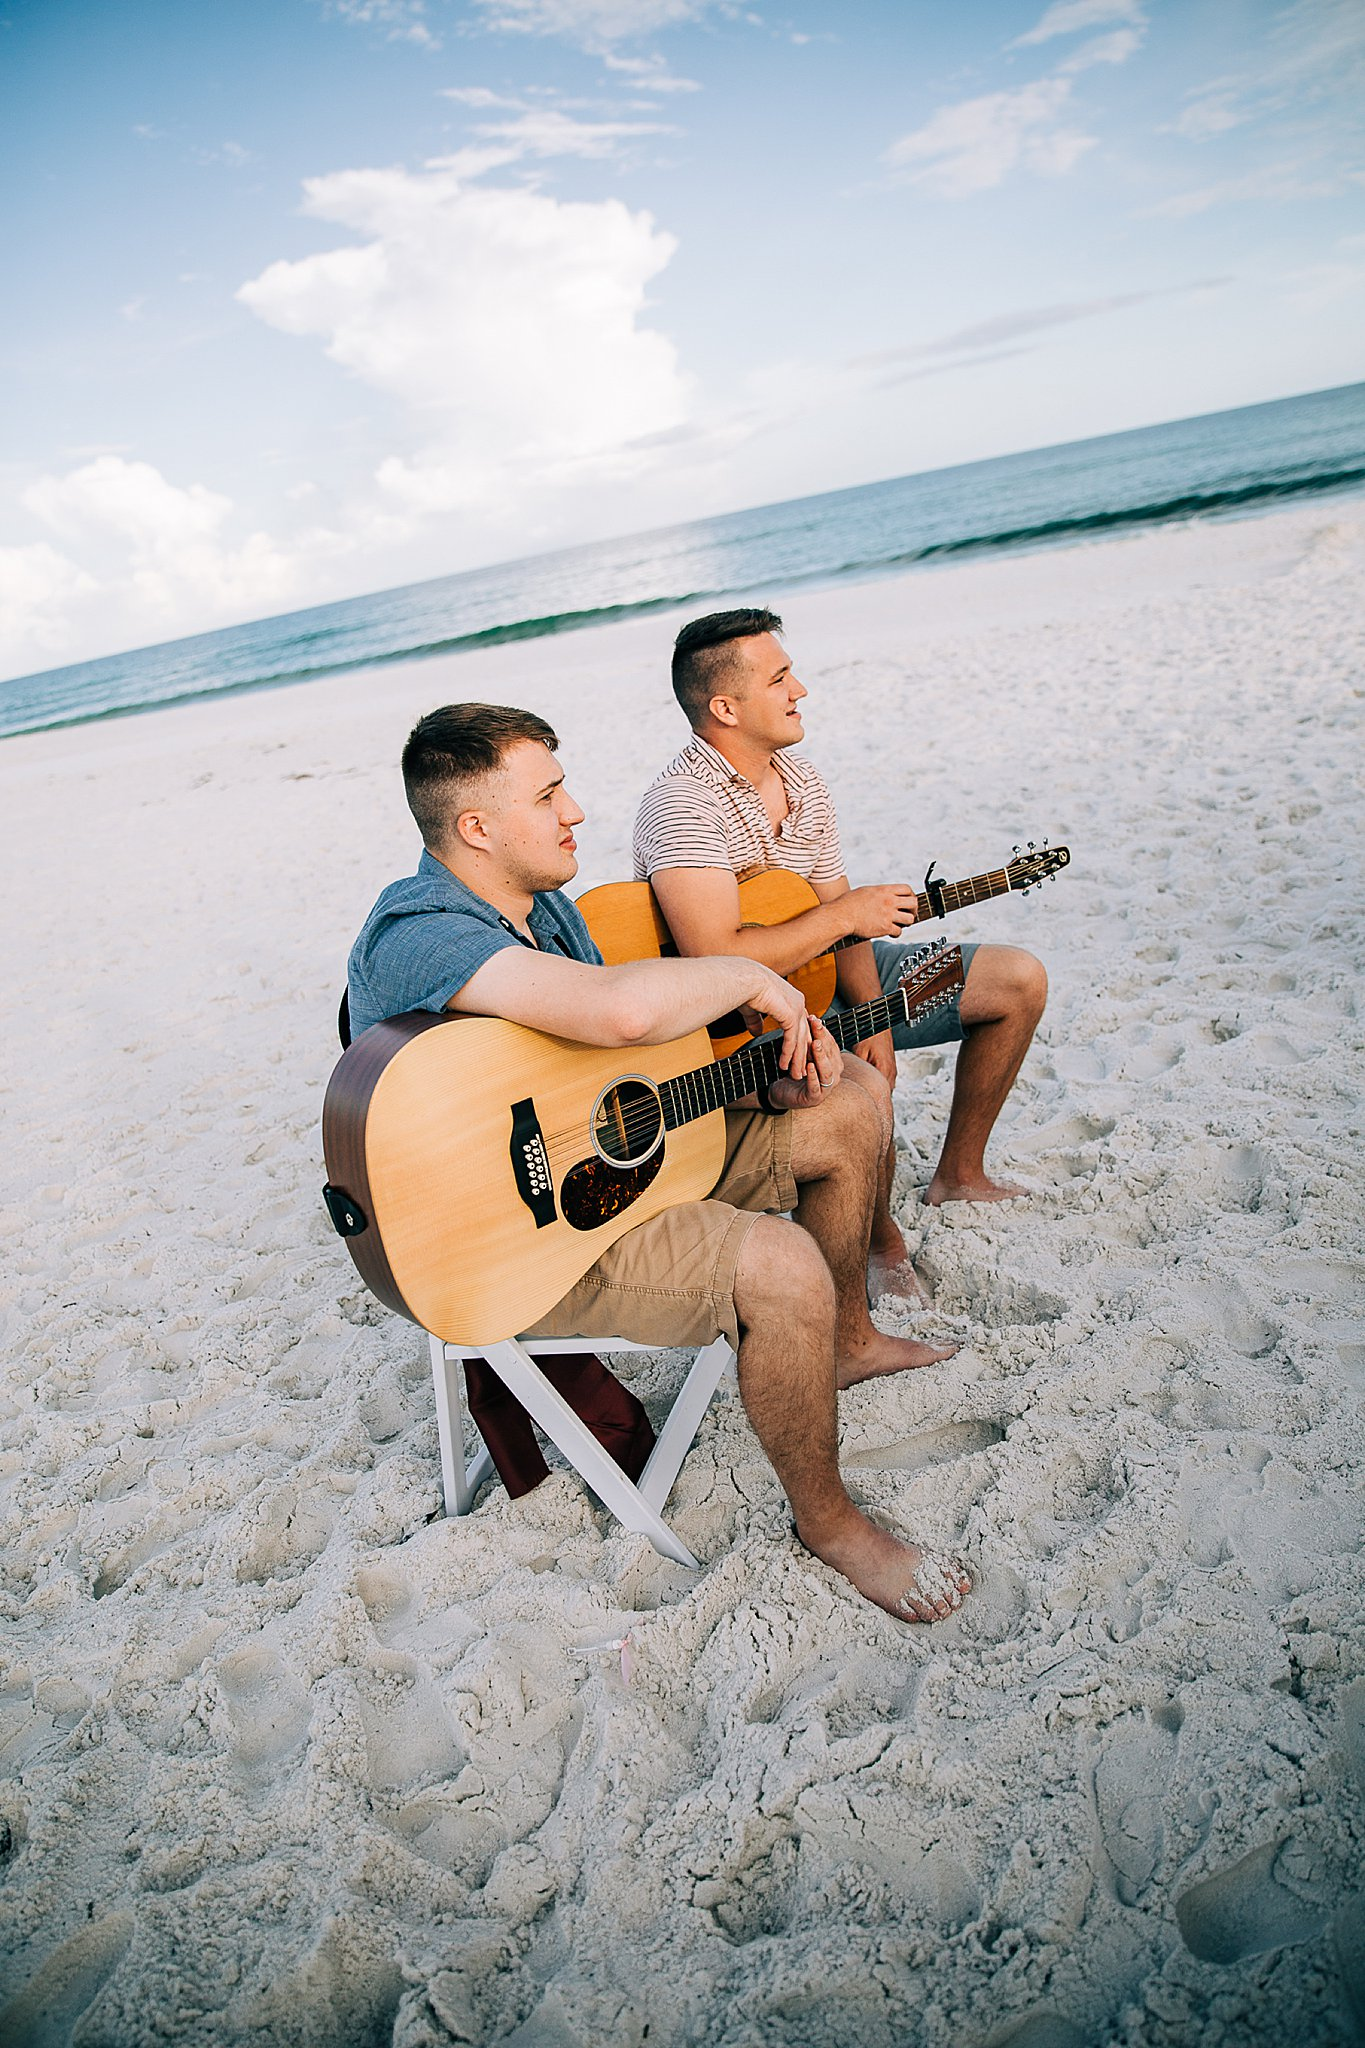 Live Music for your beach wedding